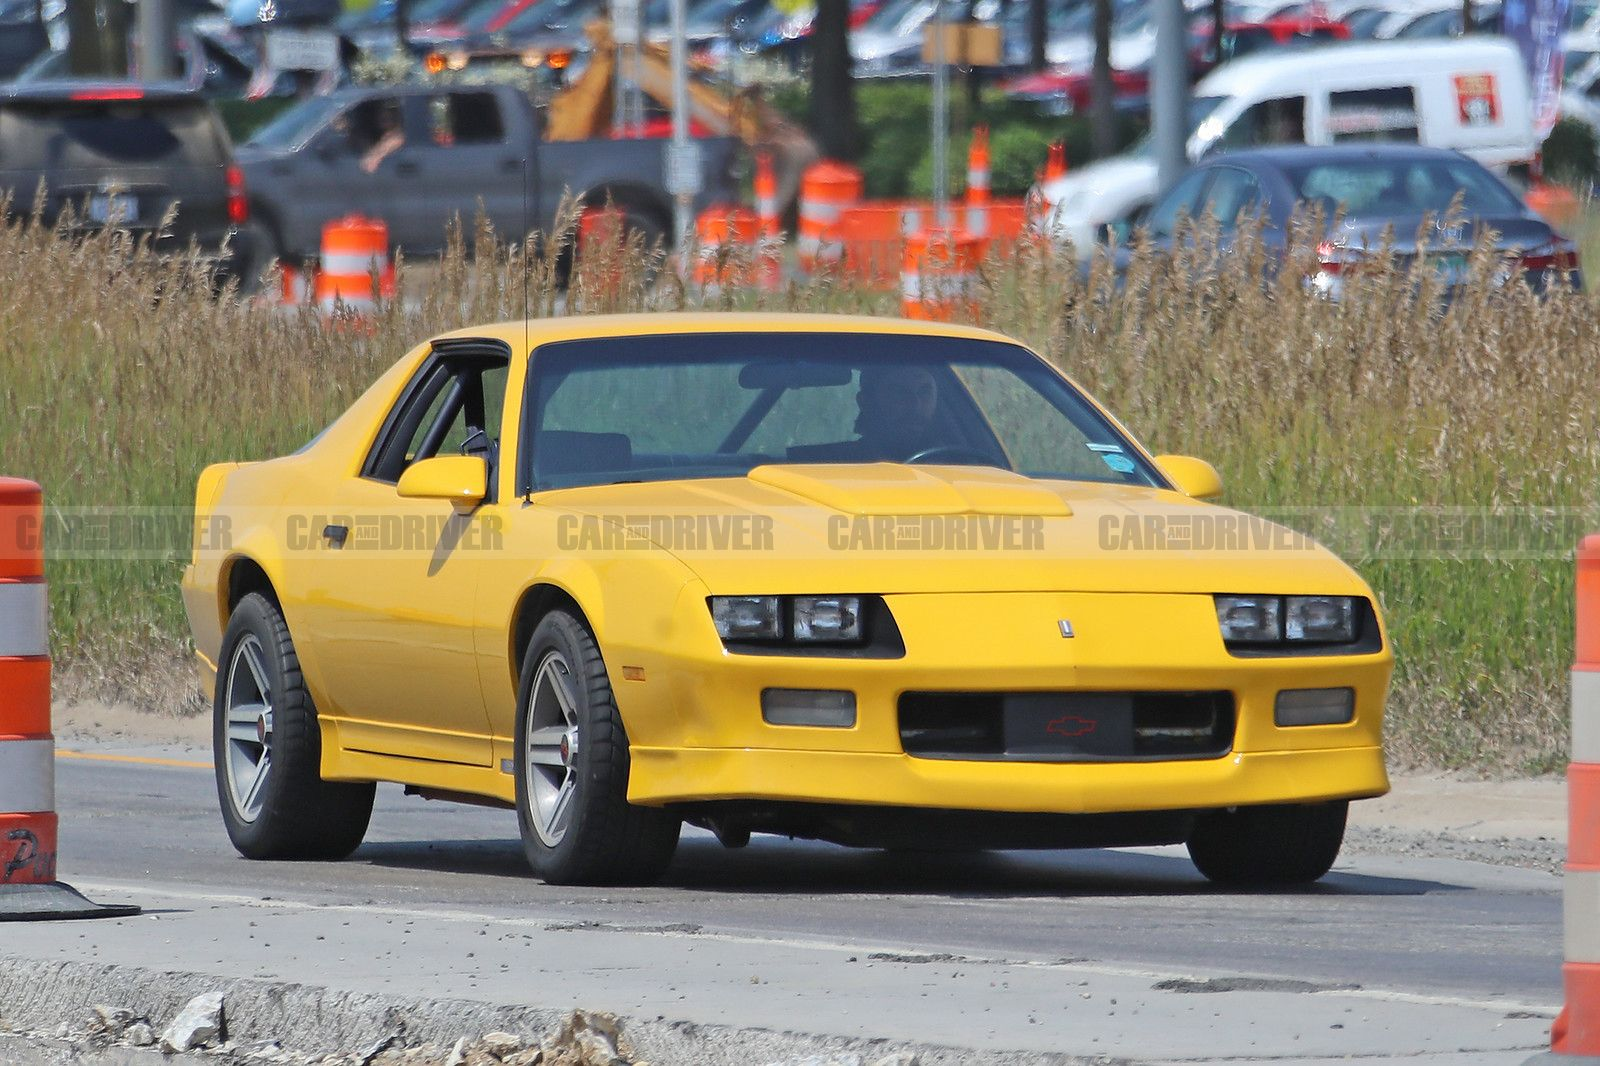 Is This 80s Chevy Camaro Hiding A New Crate Engine